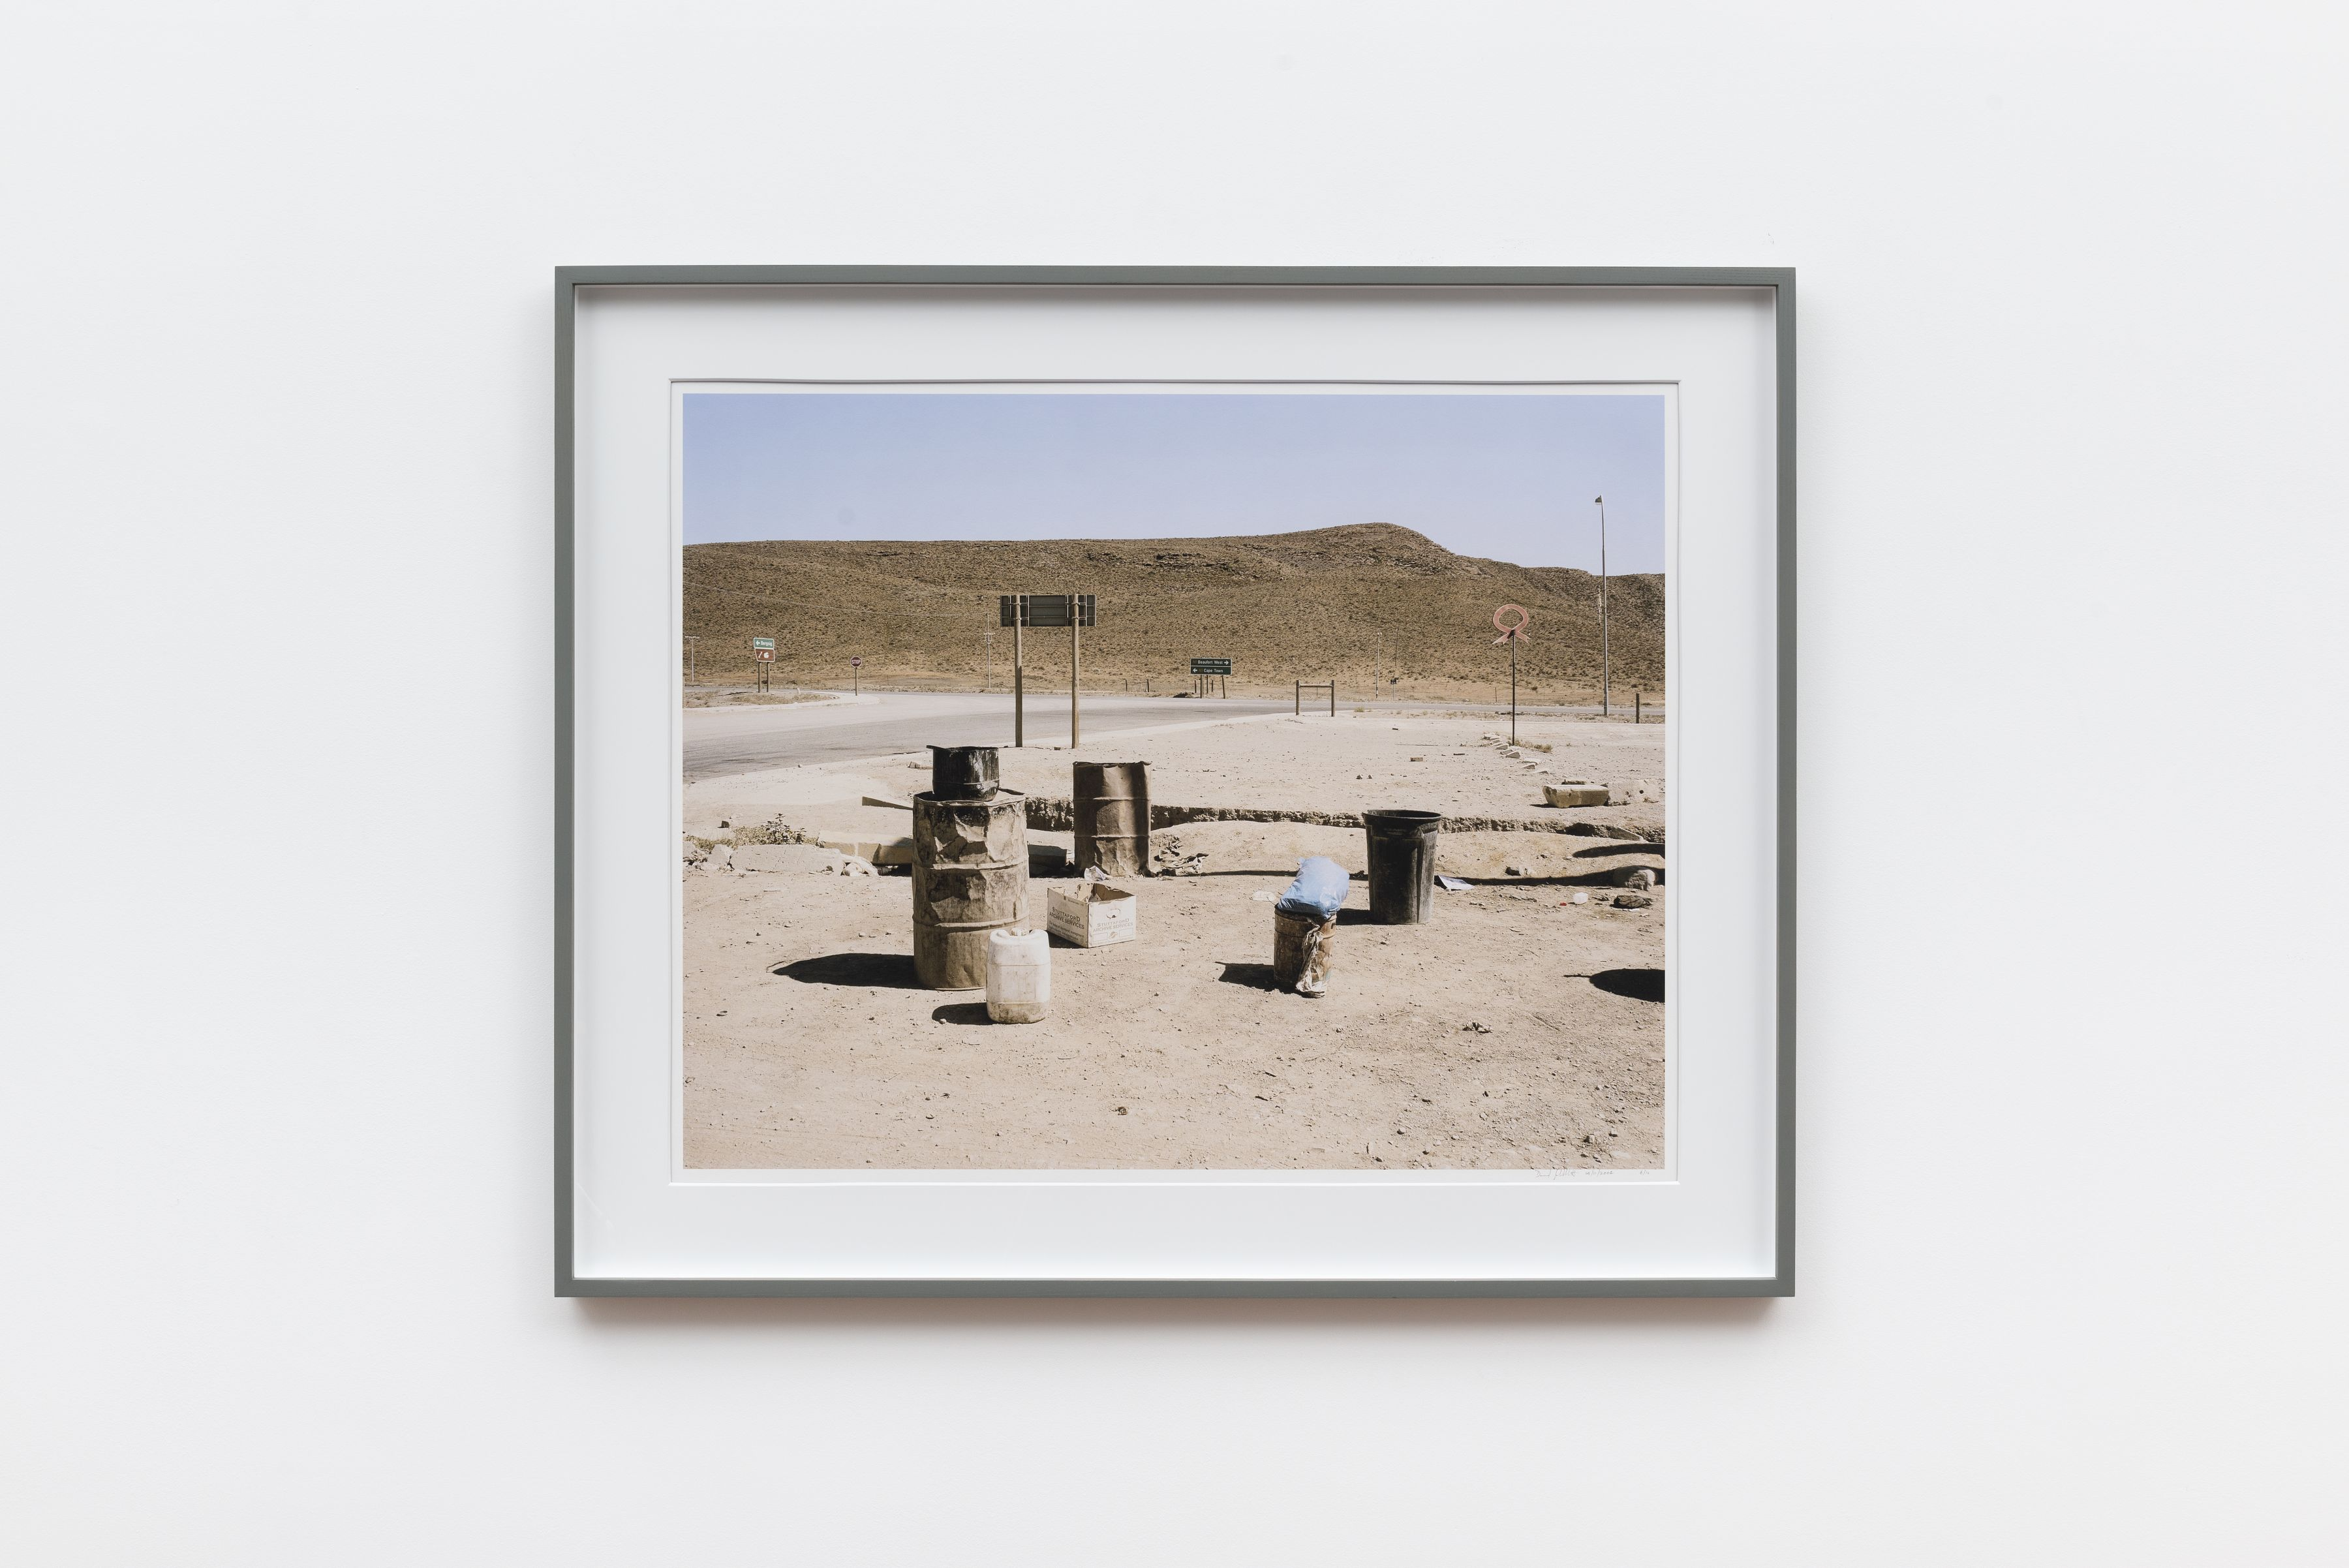 Artwork Image 9 (replace with framed image)